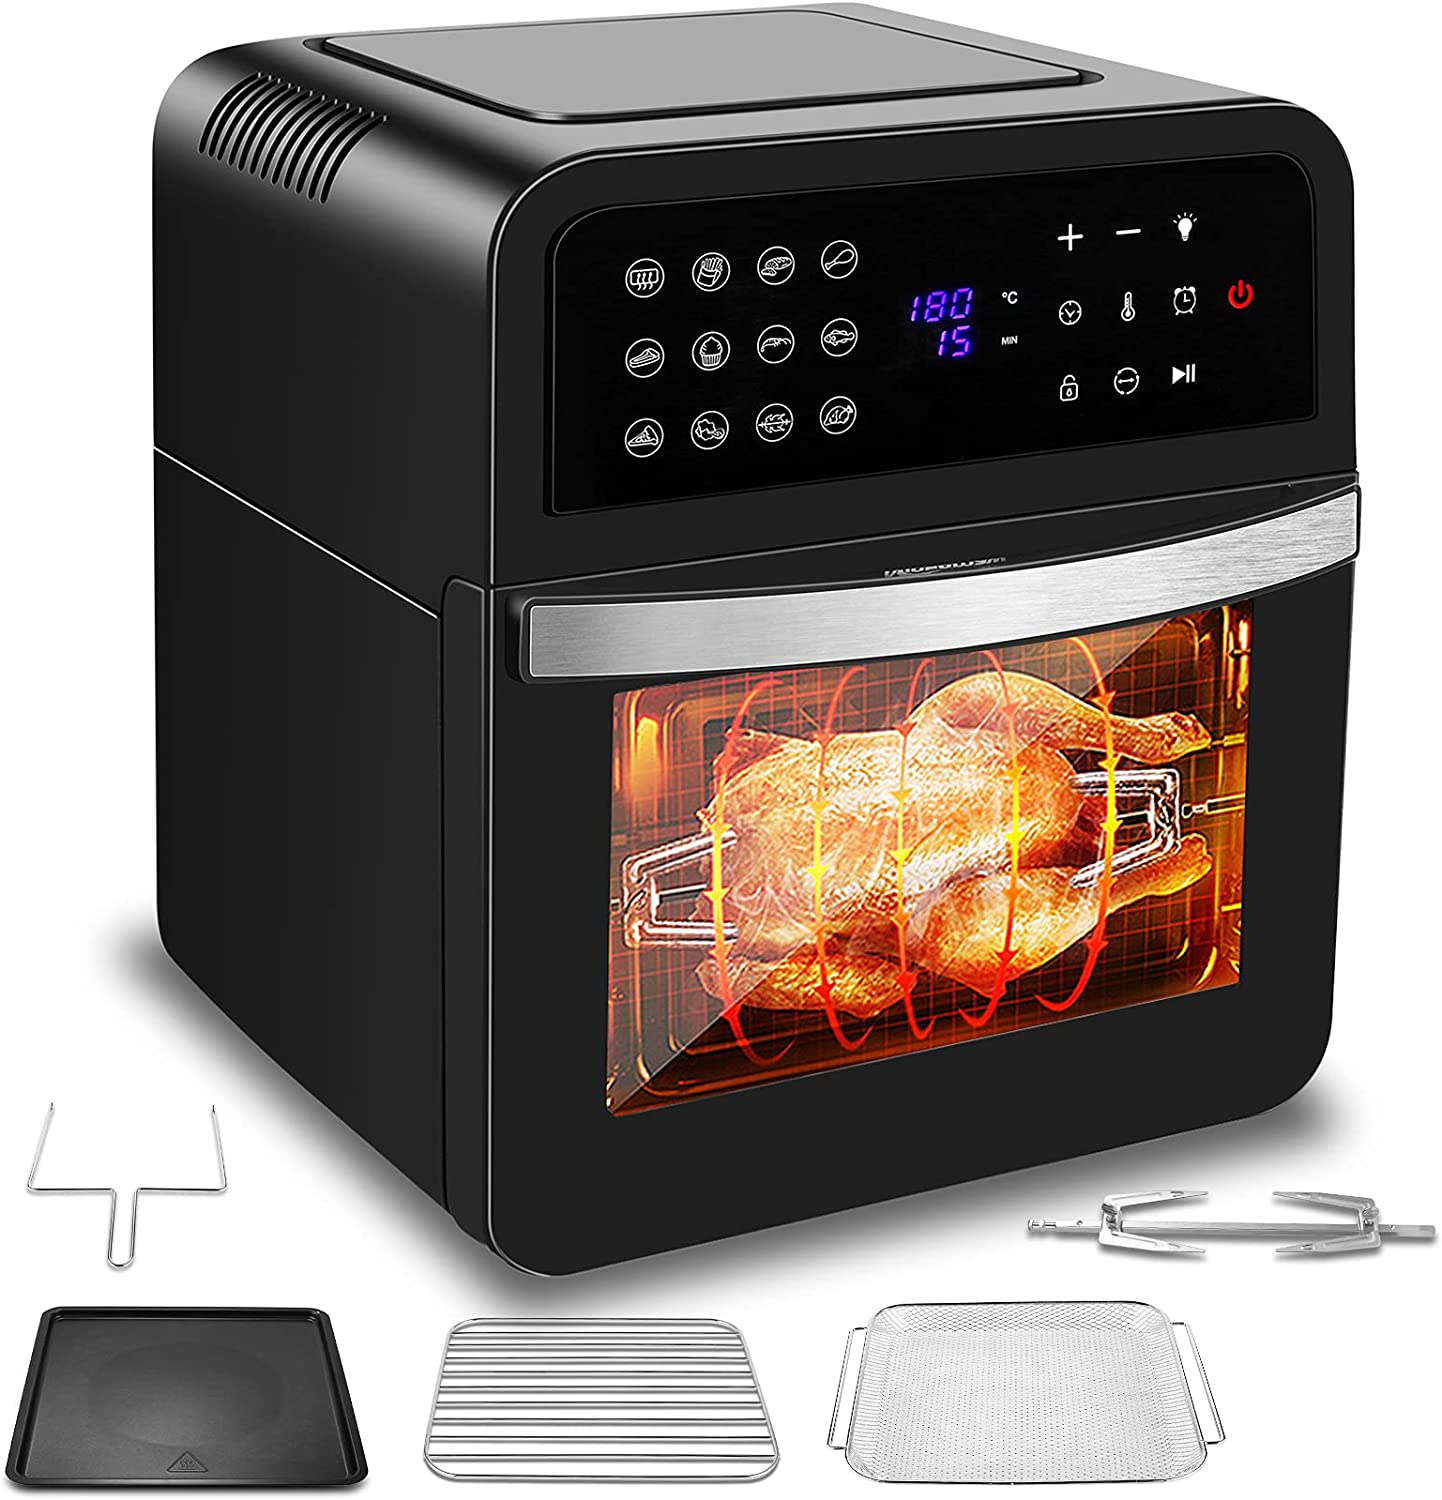 13 Quart Air Fryer Toaster Oven Combo, 12-In-1 Multifunctional Intell Small Air Fryer Cooker, For Baking, Roasting and Dehydrating, Digital LCD Touch Screen, Nonstick Basket, Accessories Included